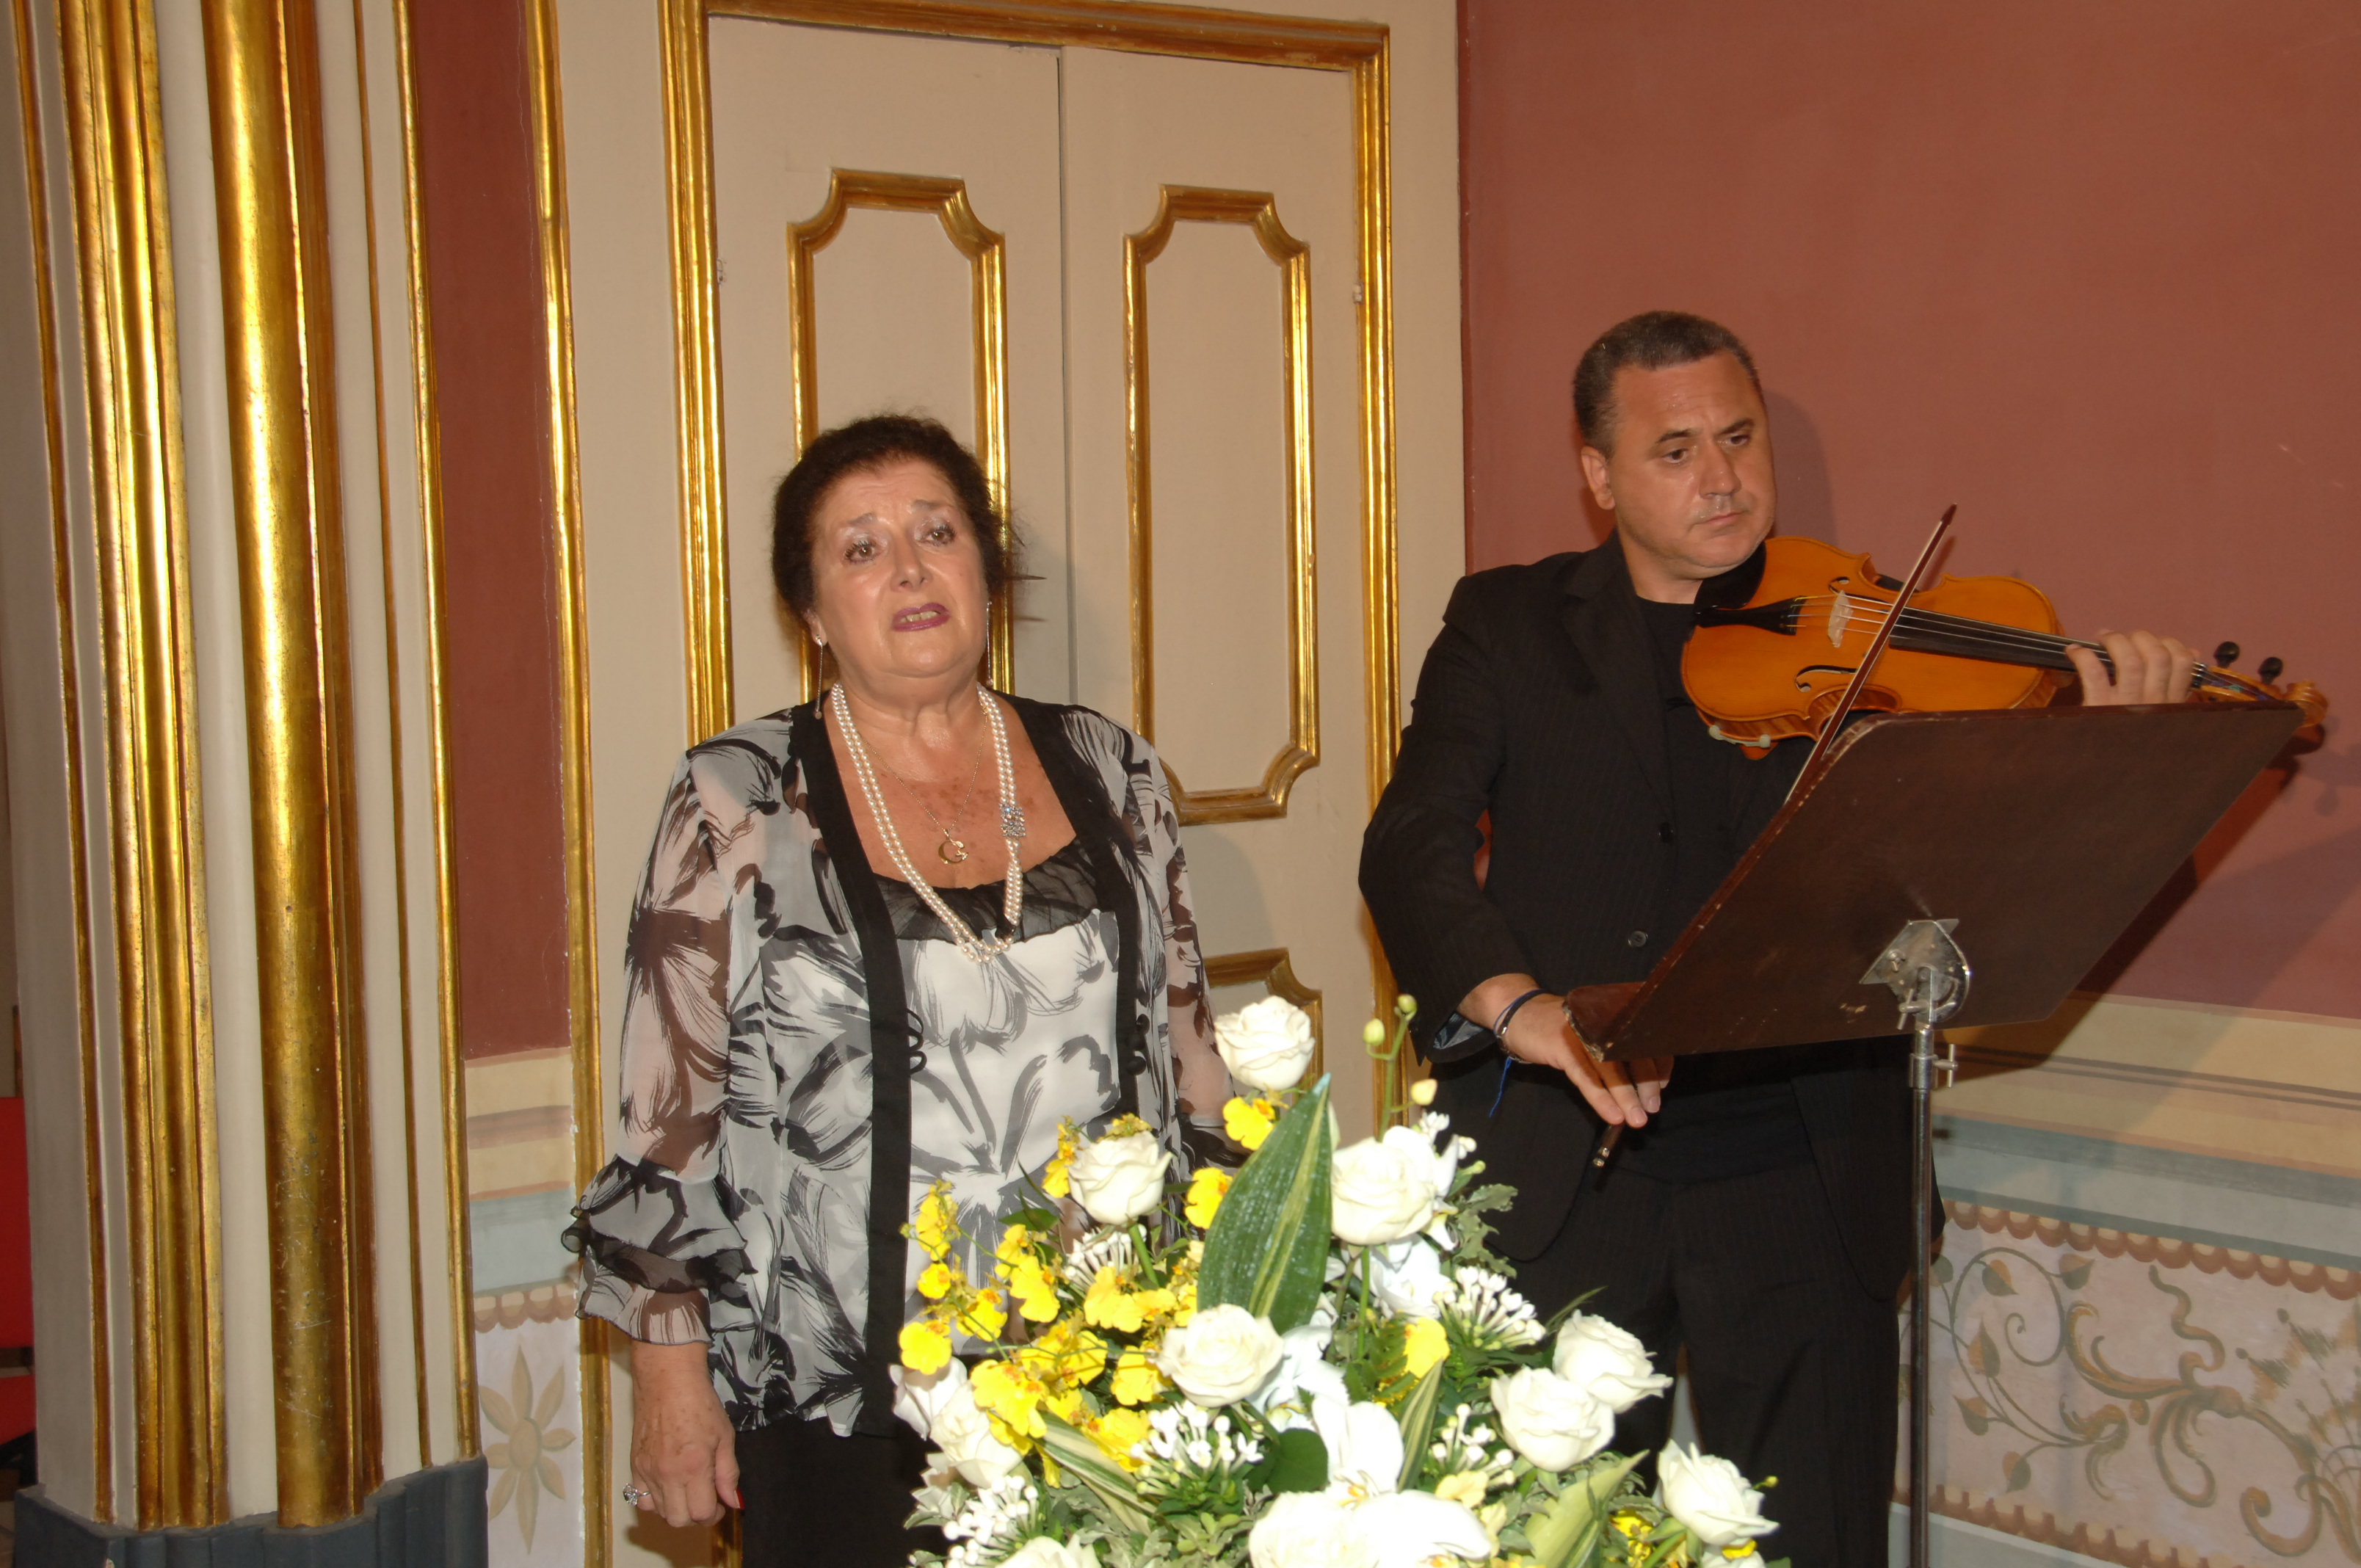 http://www.weddingamalfi.com/wp-content/uploads/Enza-and-Mario-wedding-music-singer-and-violin.jpg